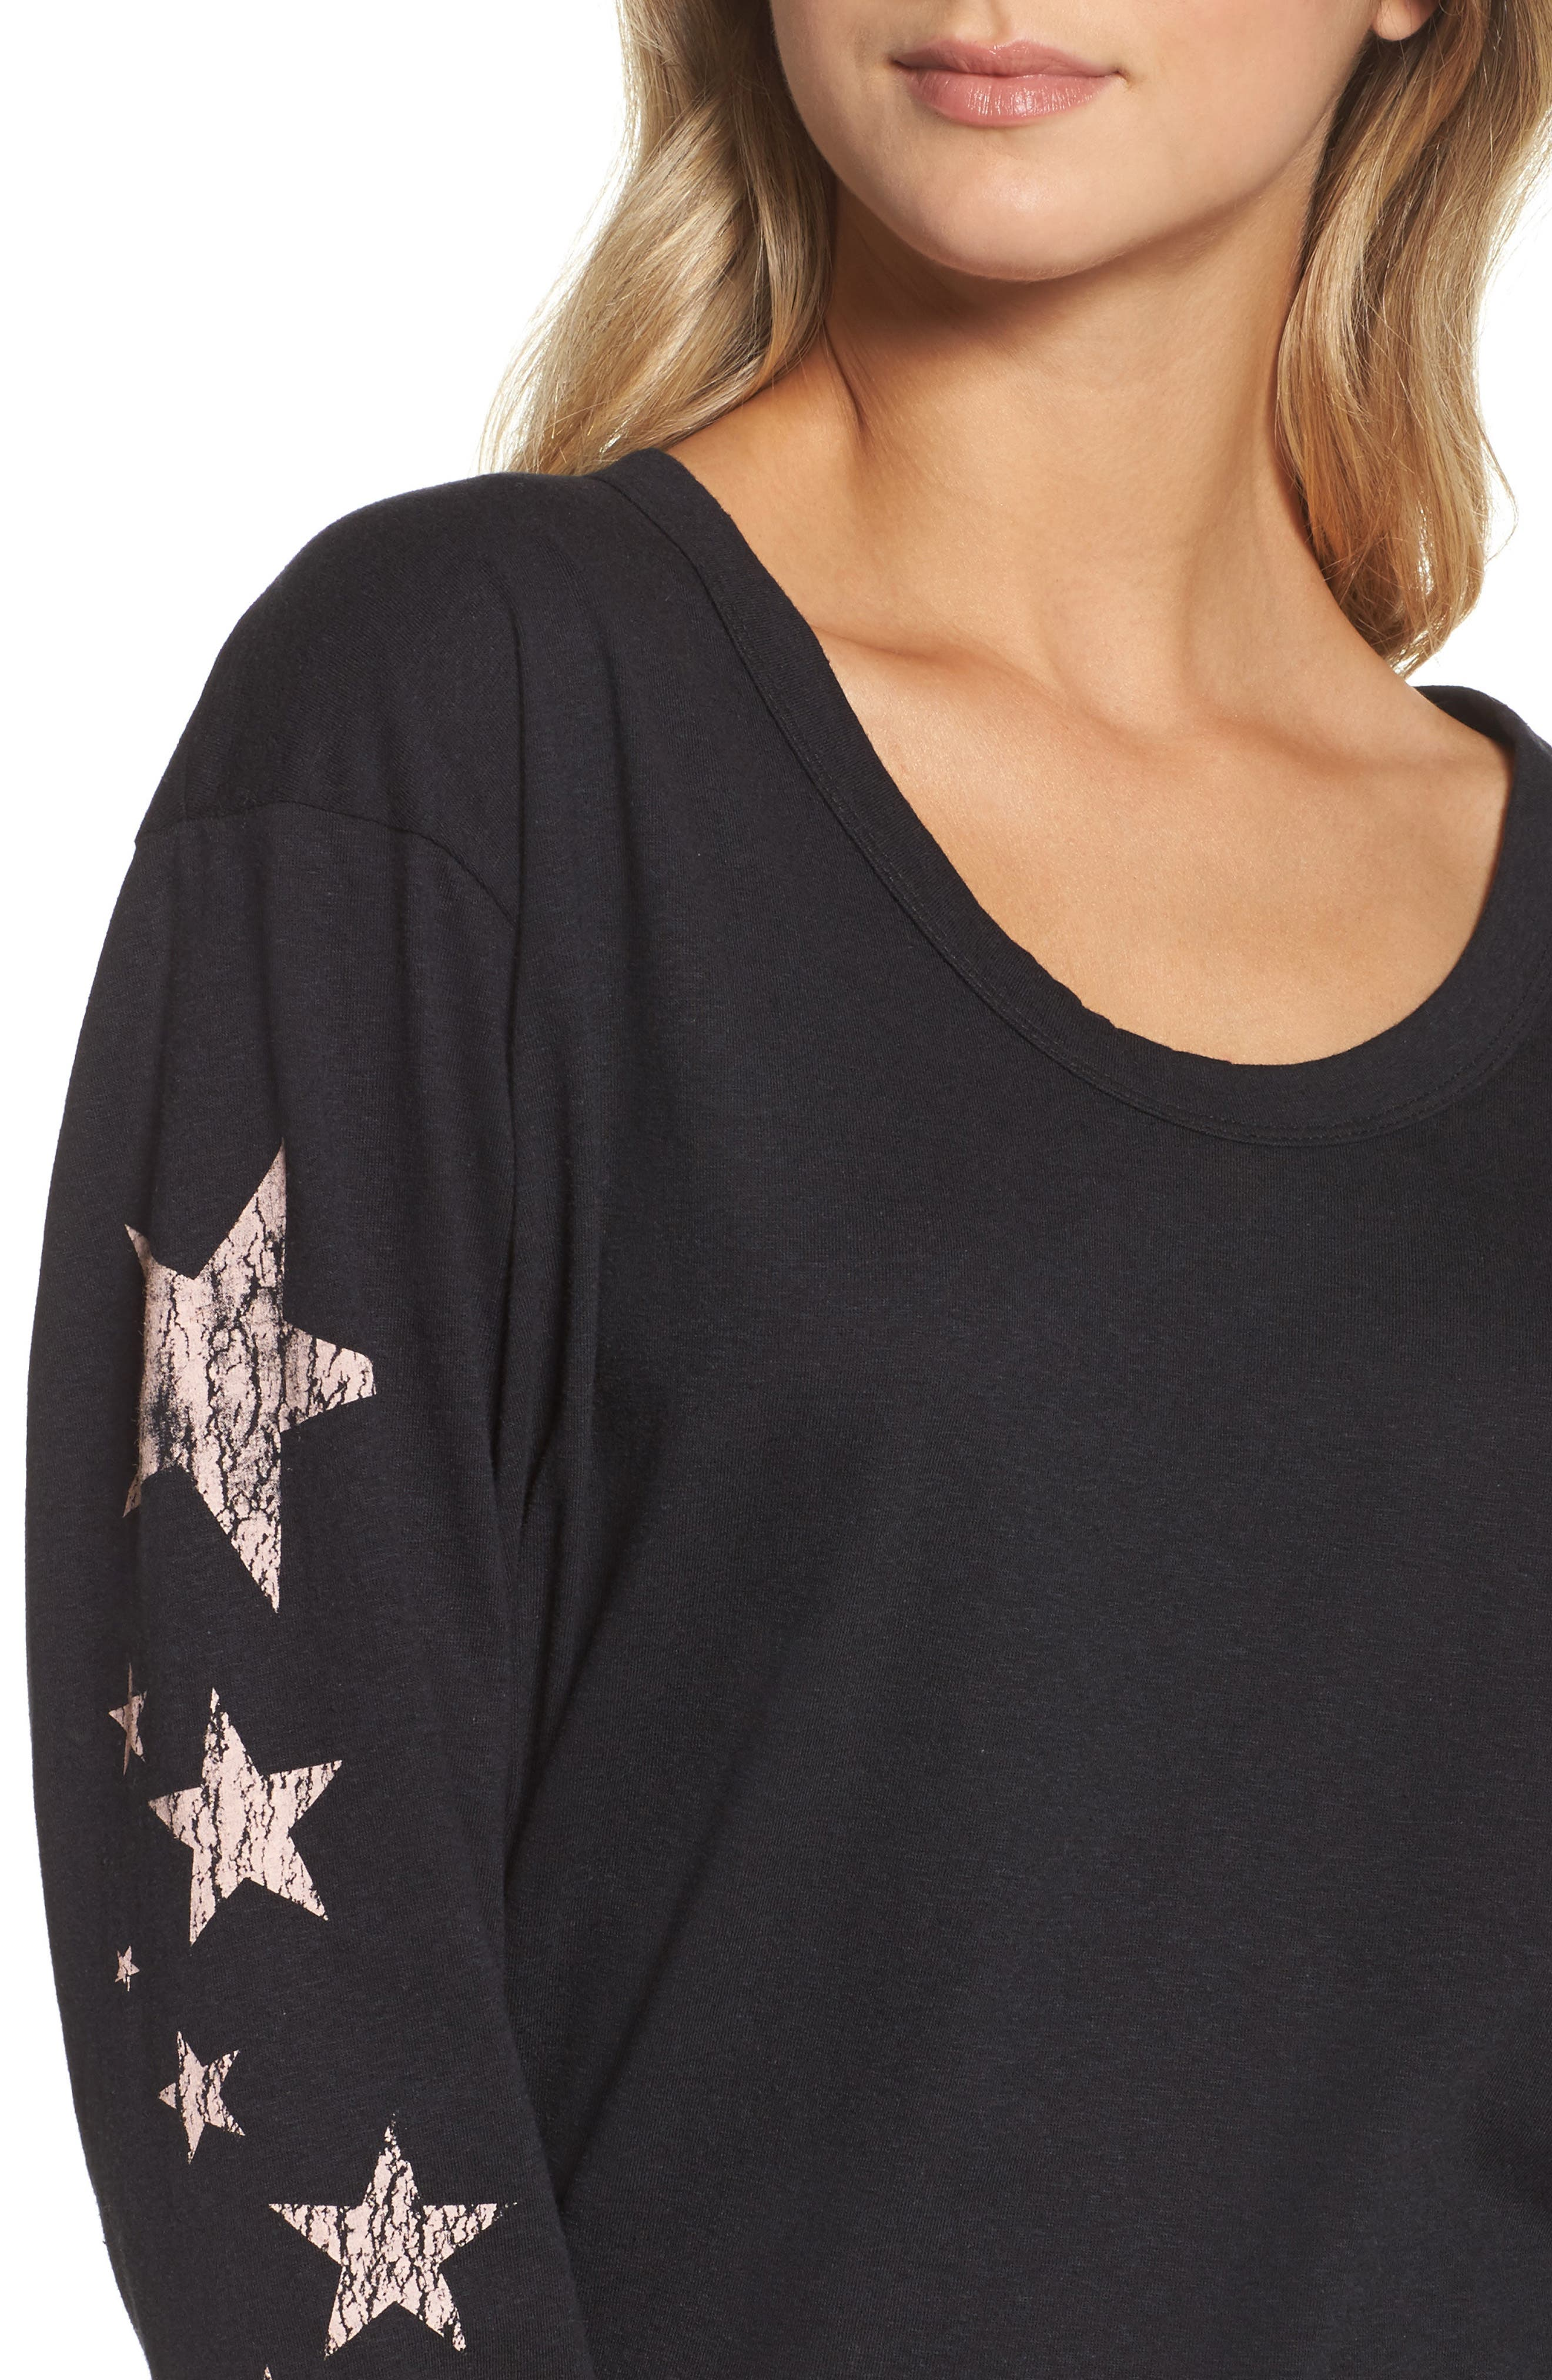 FREE PEOPLE MOVEMENT, Melrose Star Graphic Top, Alternate thumbnail 4, color, 001